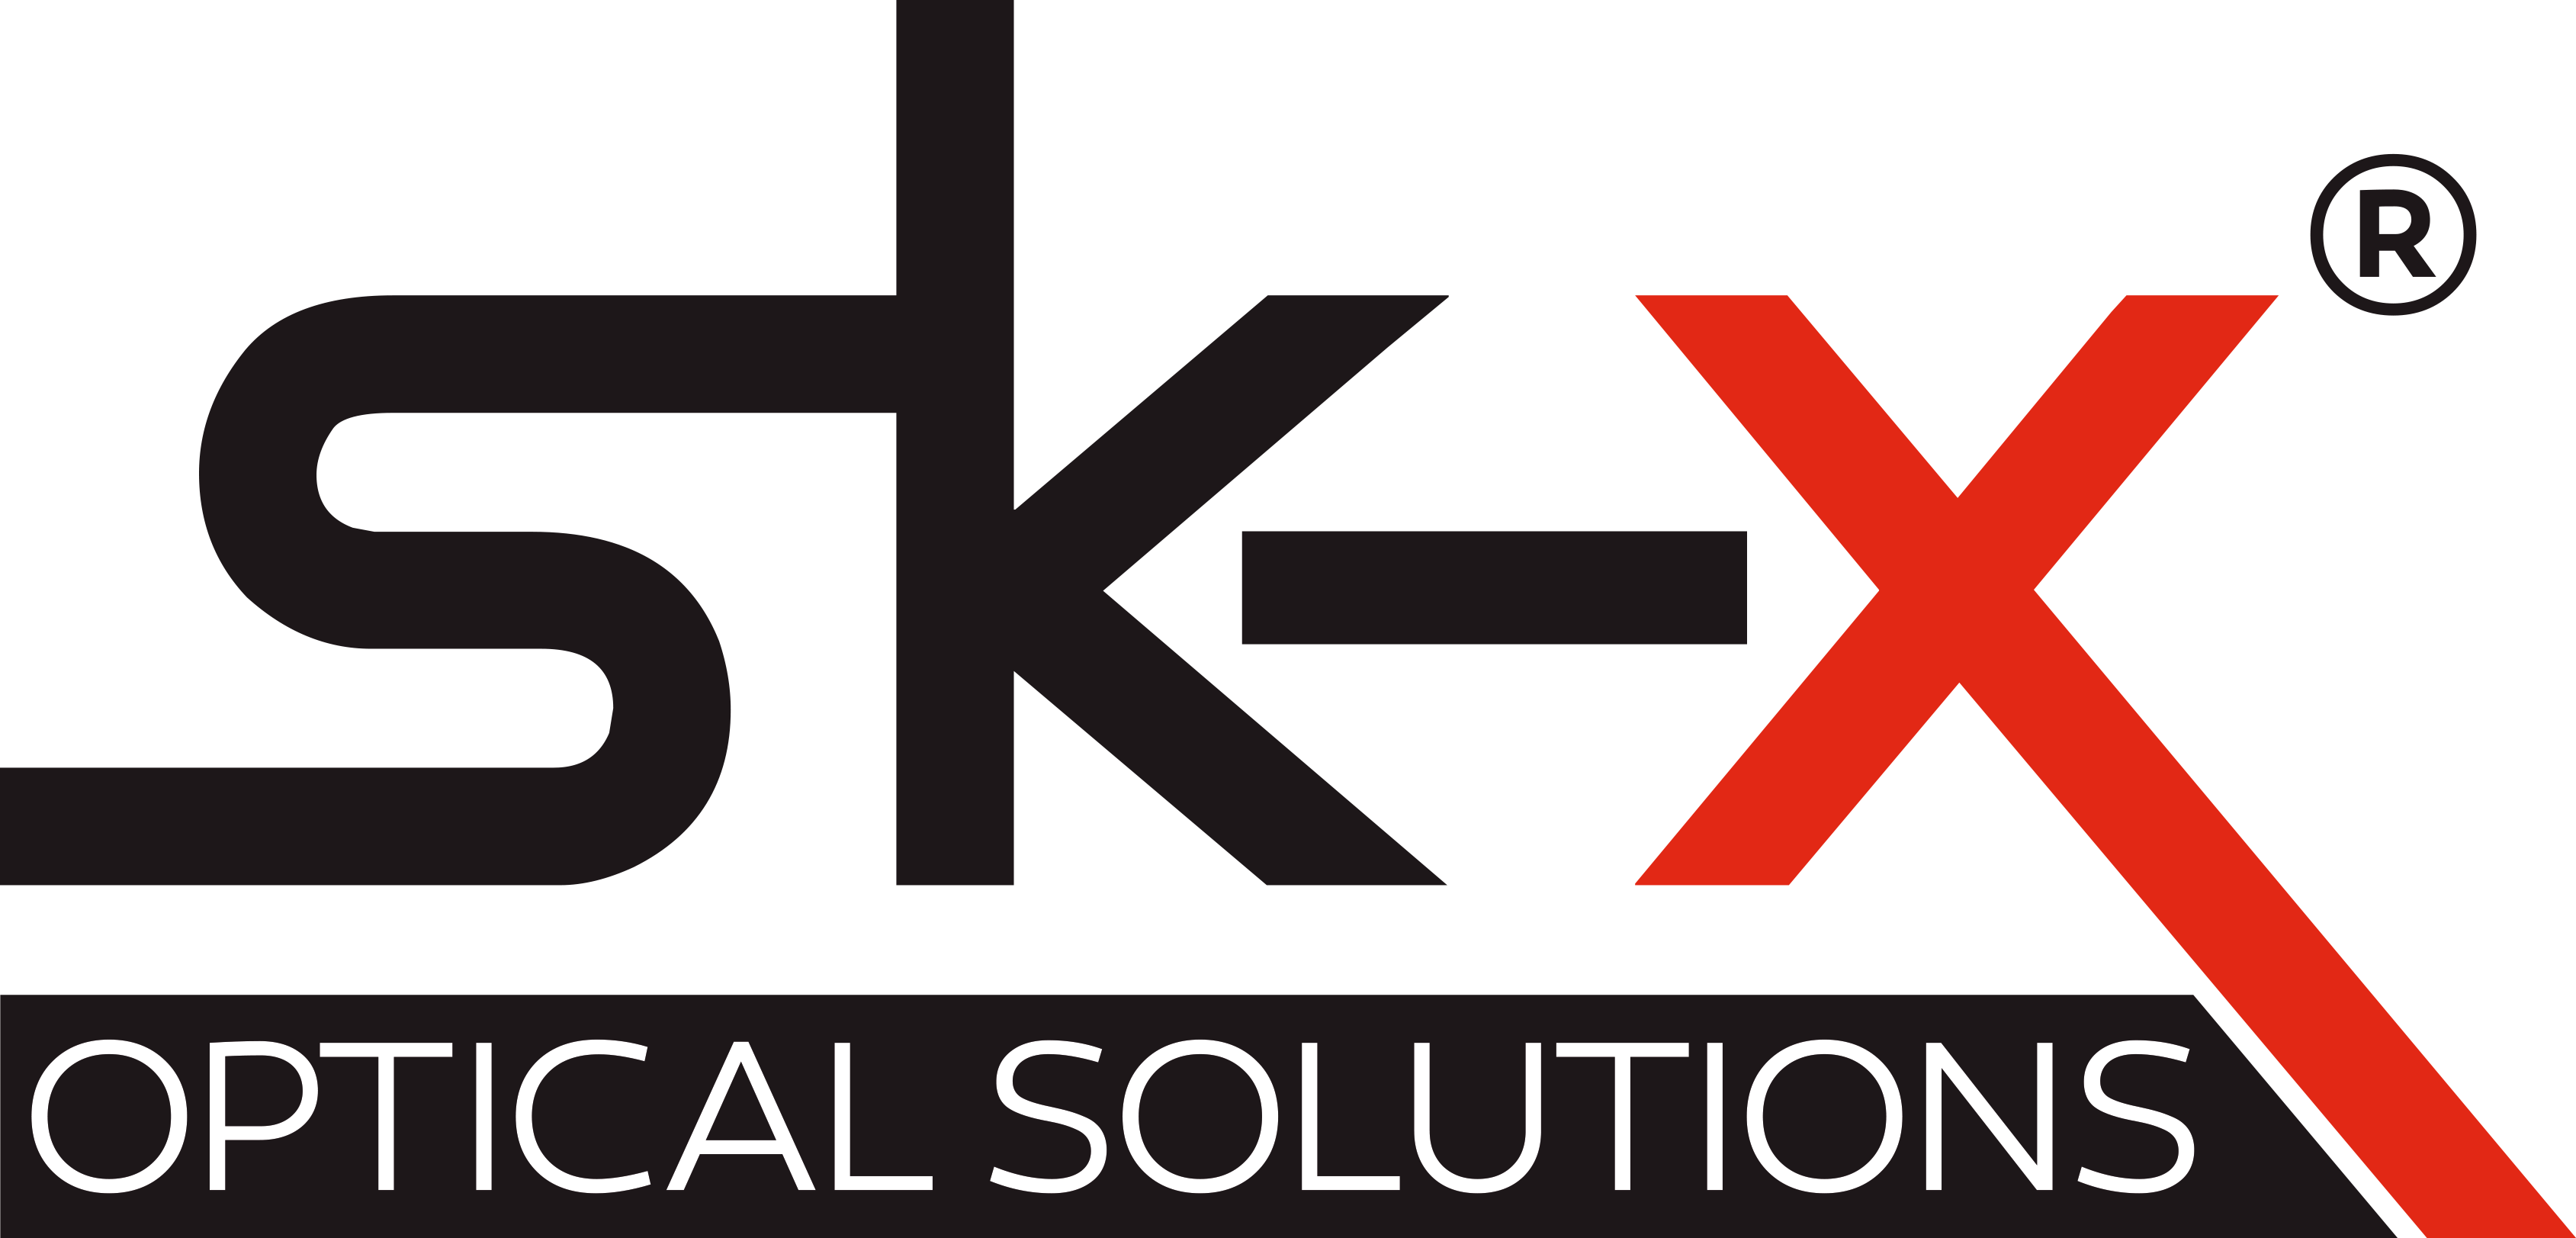 IT: SK-X® optical solutions GmbH